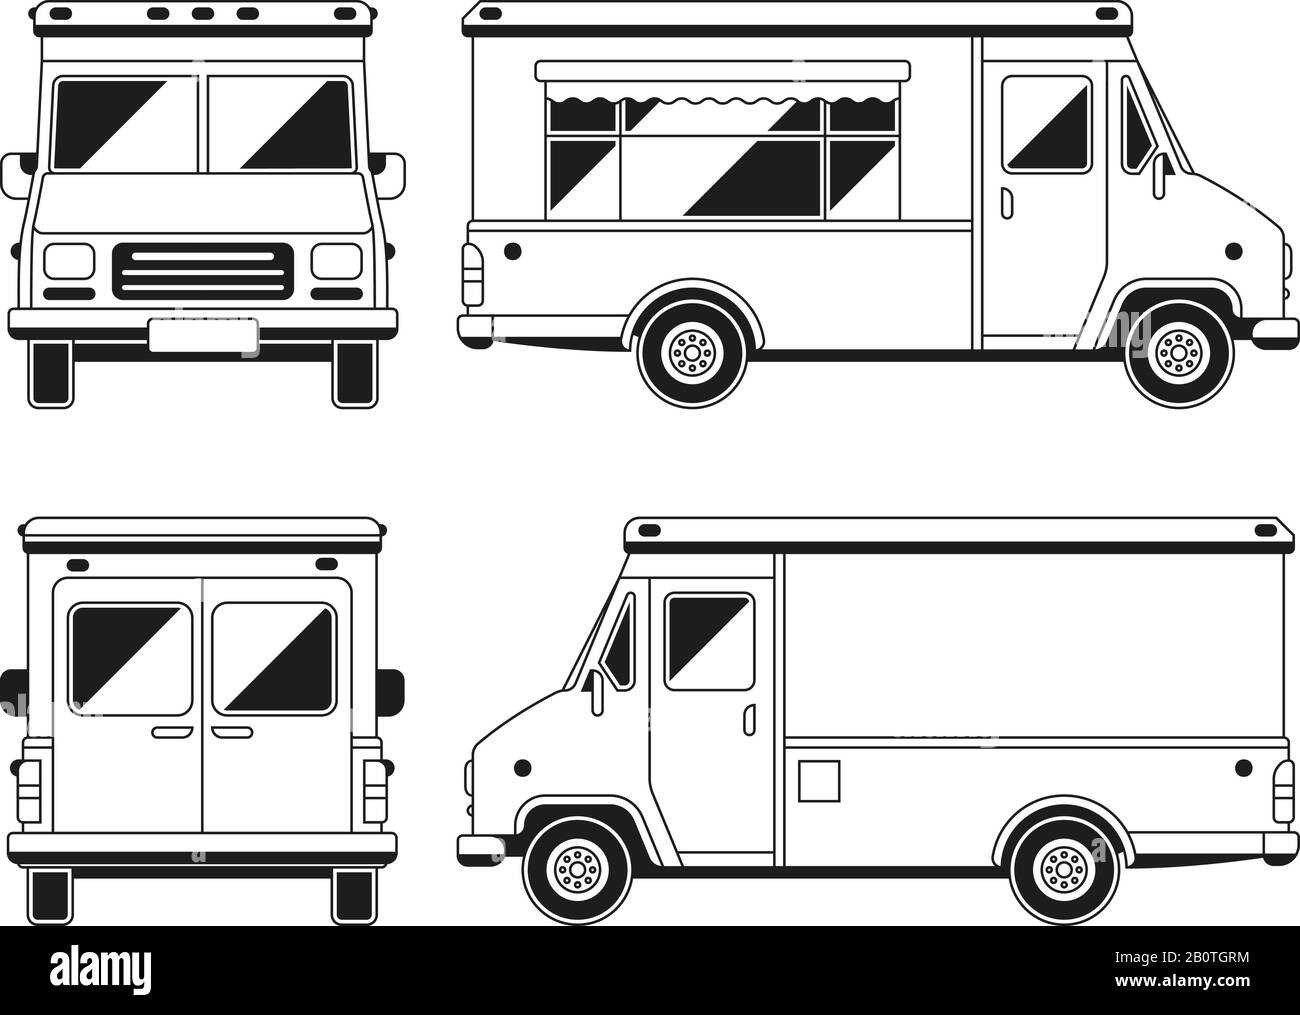 Blank commercial food truck in different points of view. Outline vector template for you advertising. Vehicle van for retail street illustration Stock Vector